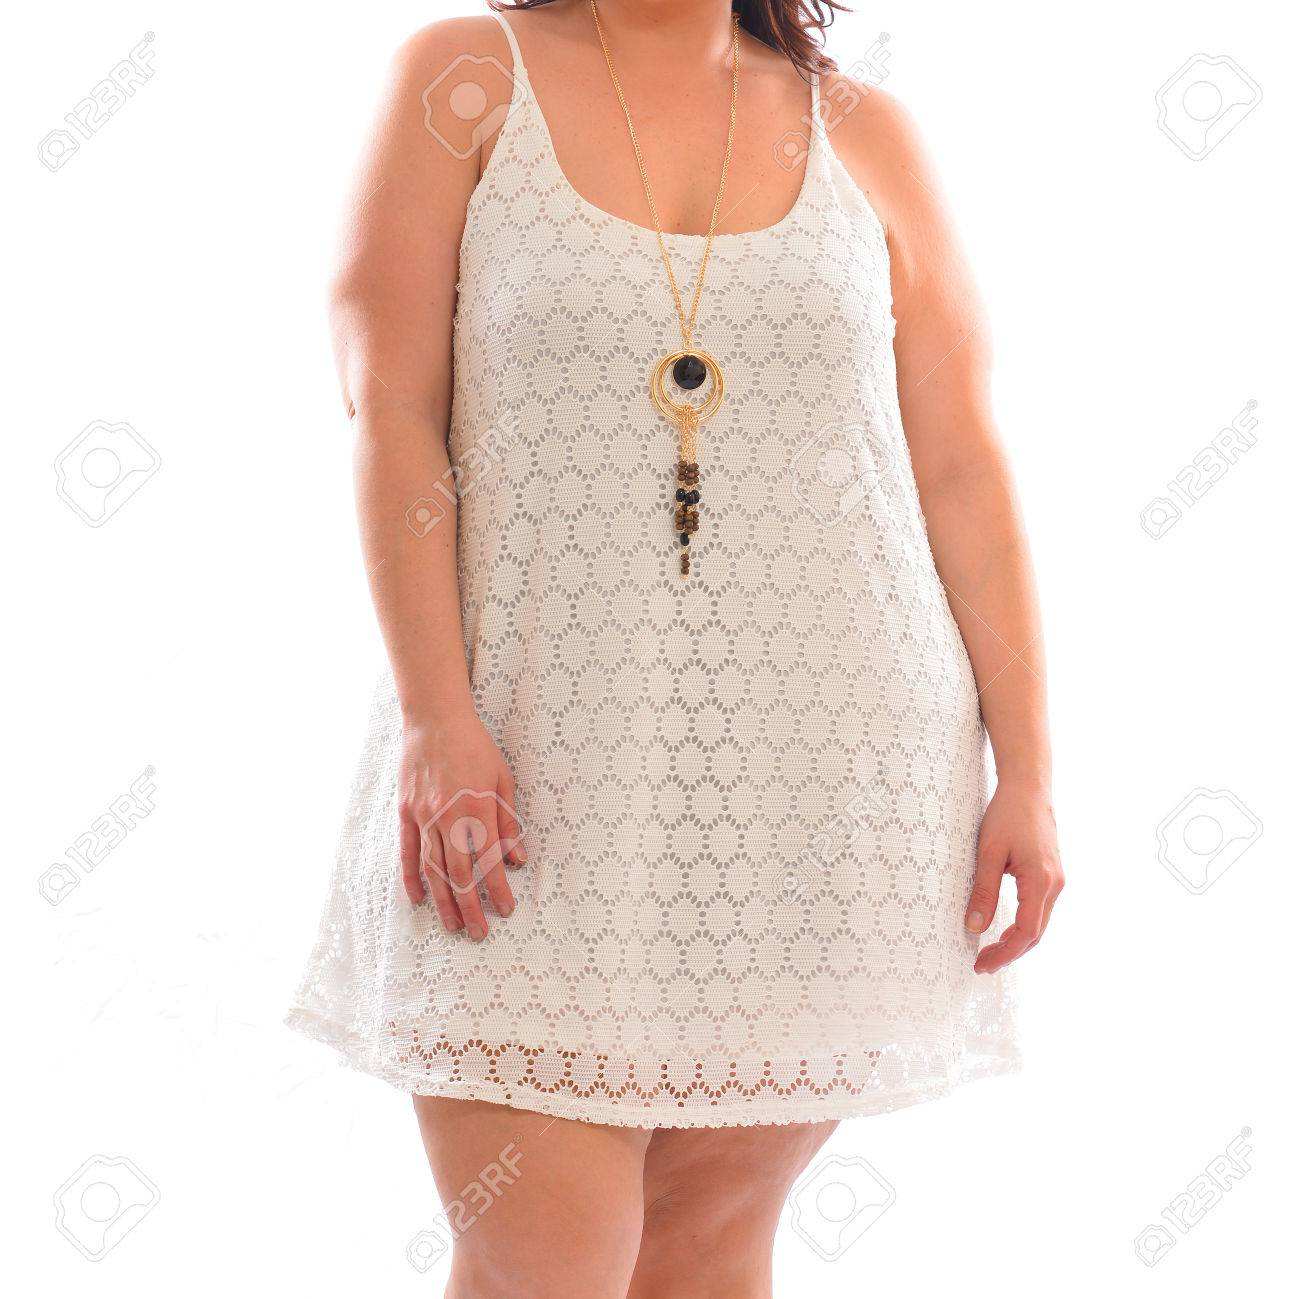 Plus size fashion model woman wearing stylish white summer dress..